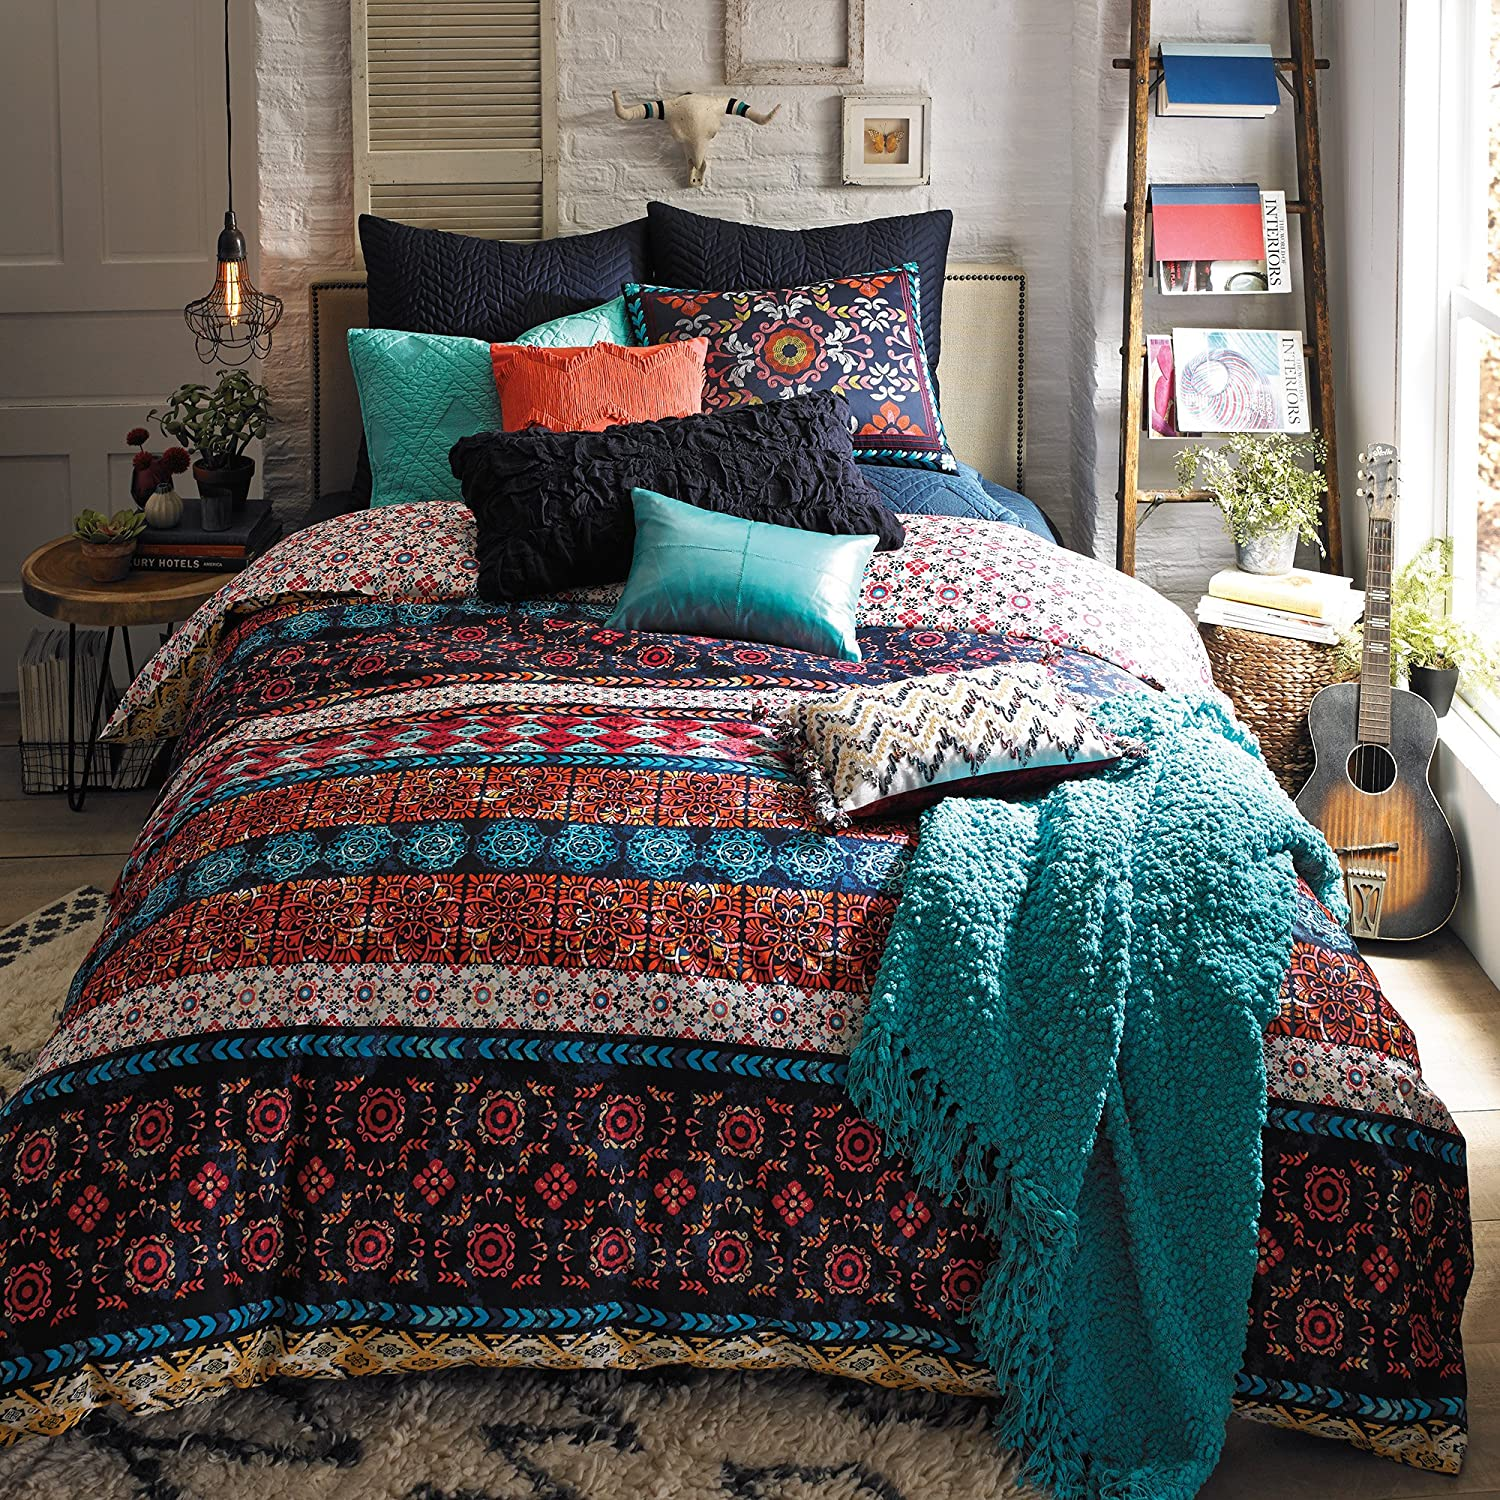 amazoncom blissliving home beddquemul madero inch by   - amazoncom blissliving home beddquemul madero inch by inch piece queen duvet set multi home  kitchen